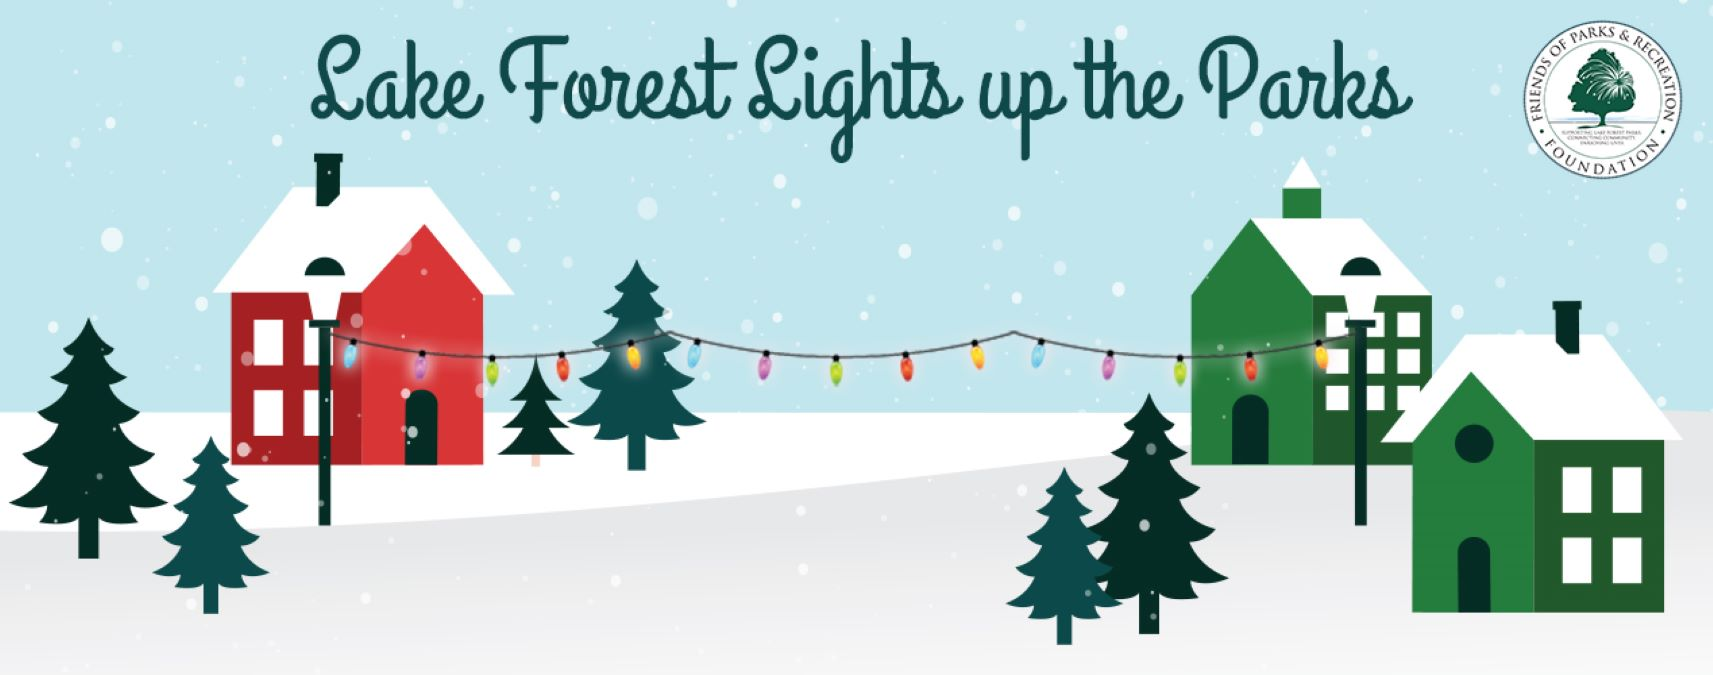 Lake Forest Lights Up the Parks